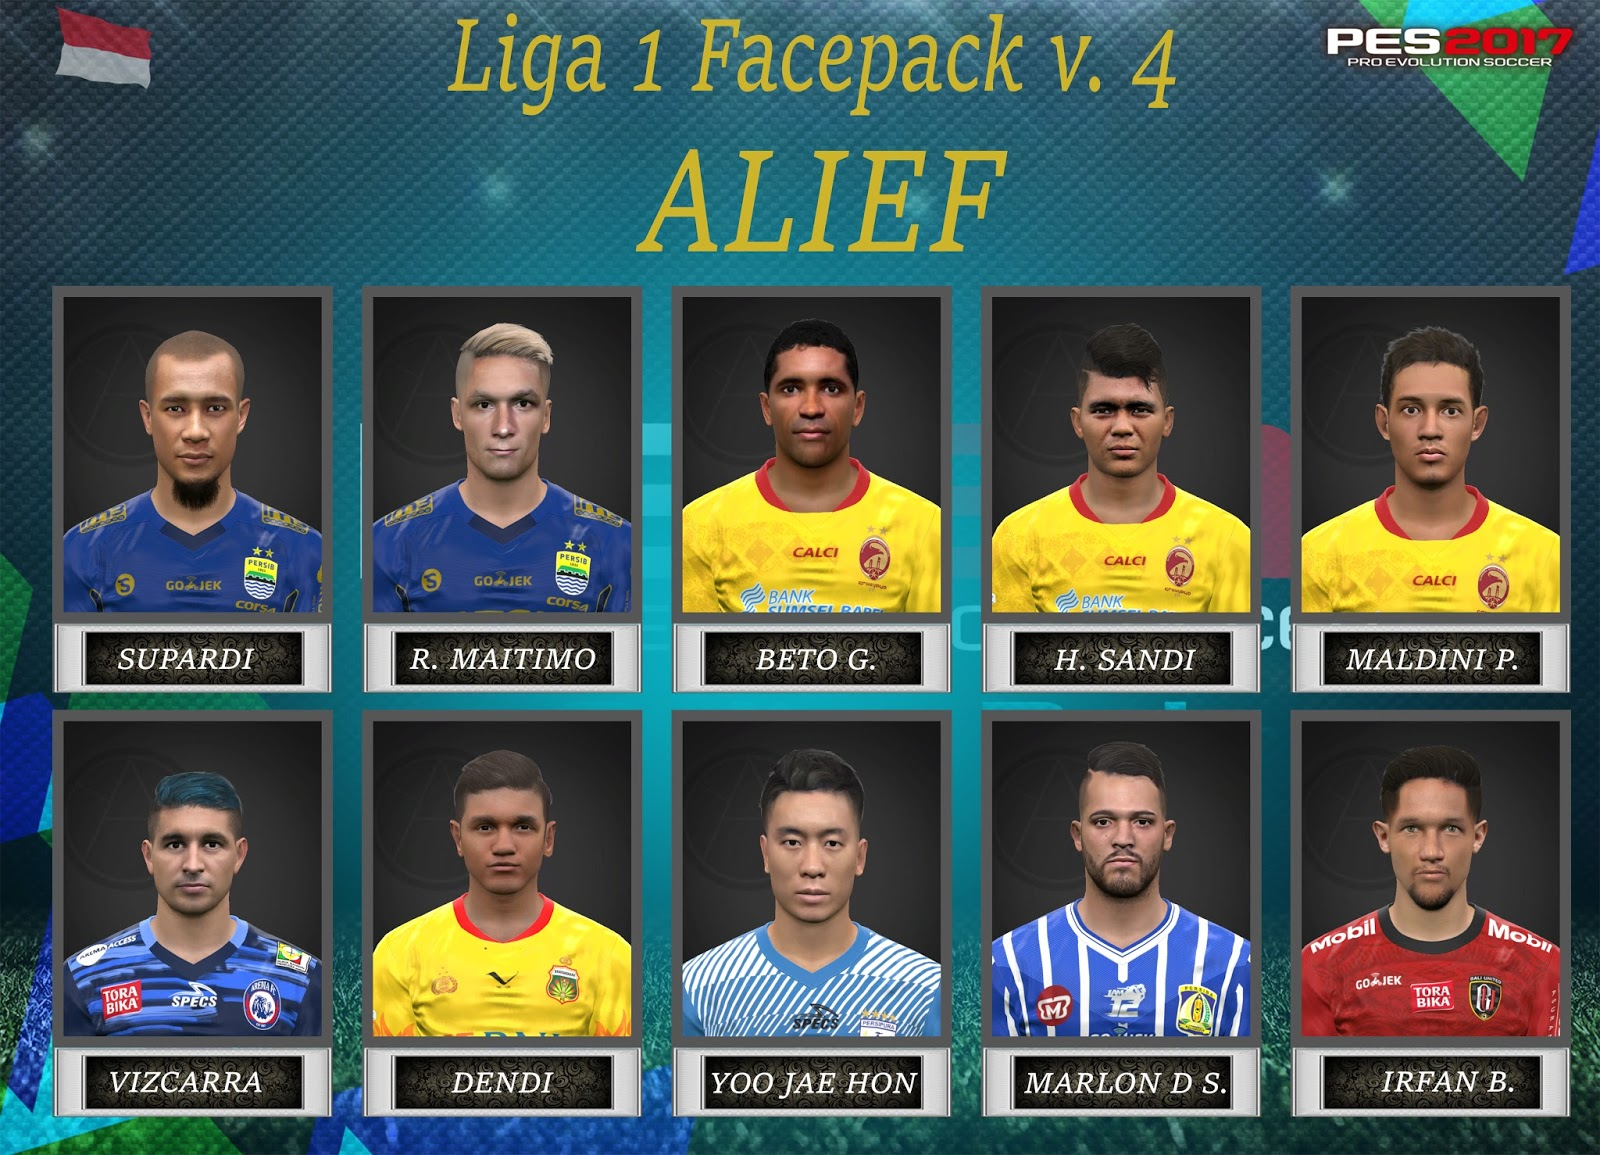 PES 2017 Liga 1 Facepack v. 4 for iPatch and SSPatch by Alief